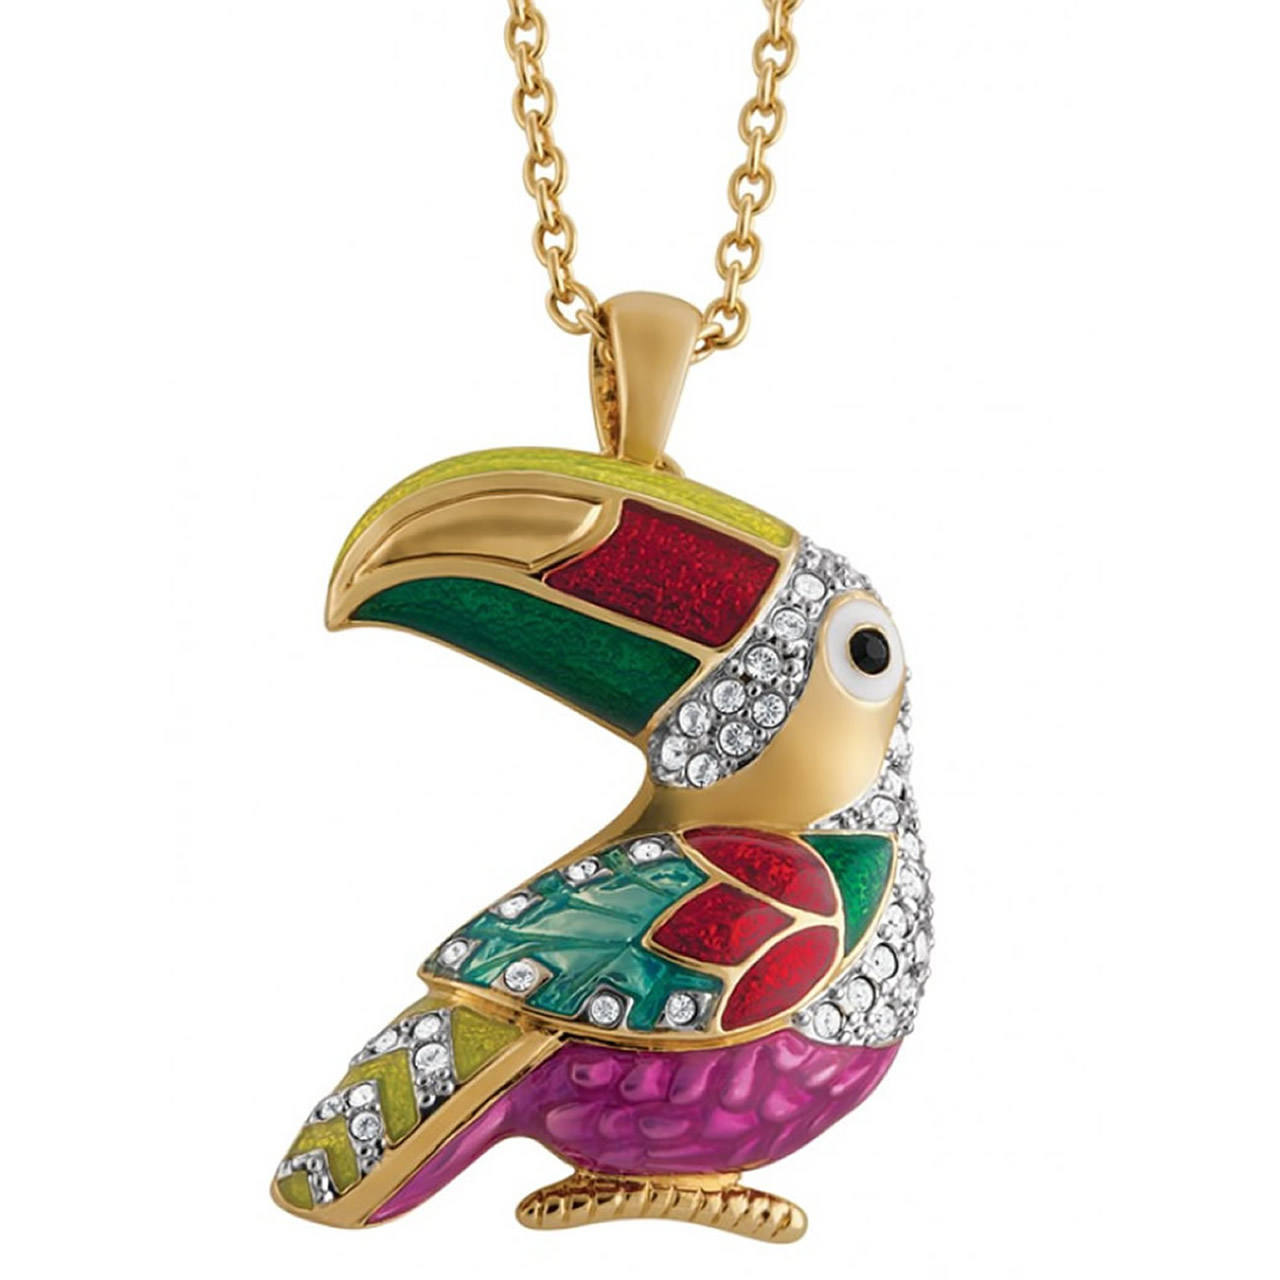 Colourful, Gold Plated Toucan Brooch/Pendant